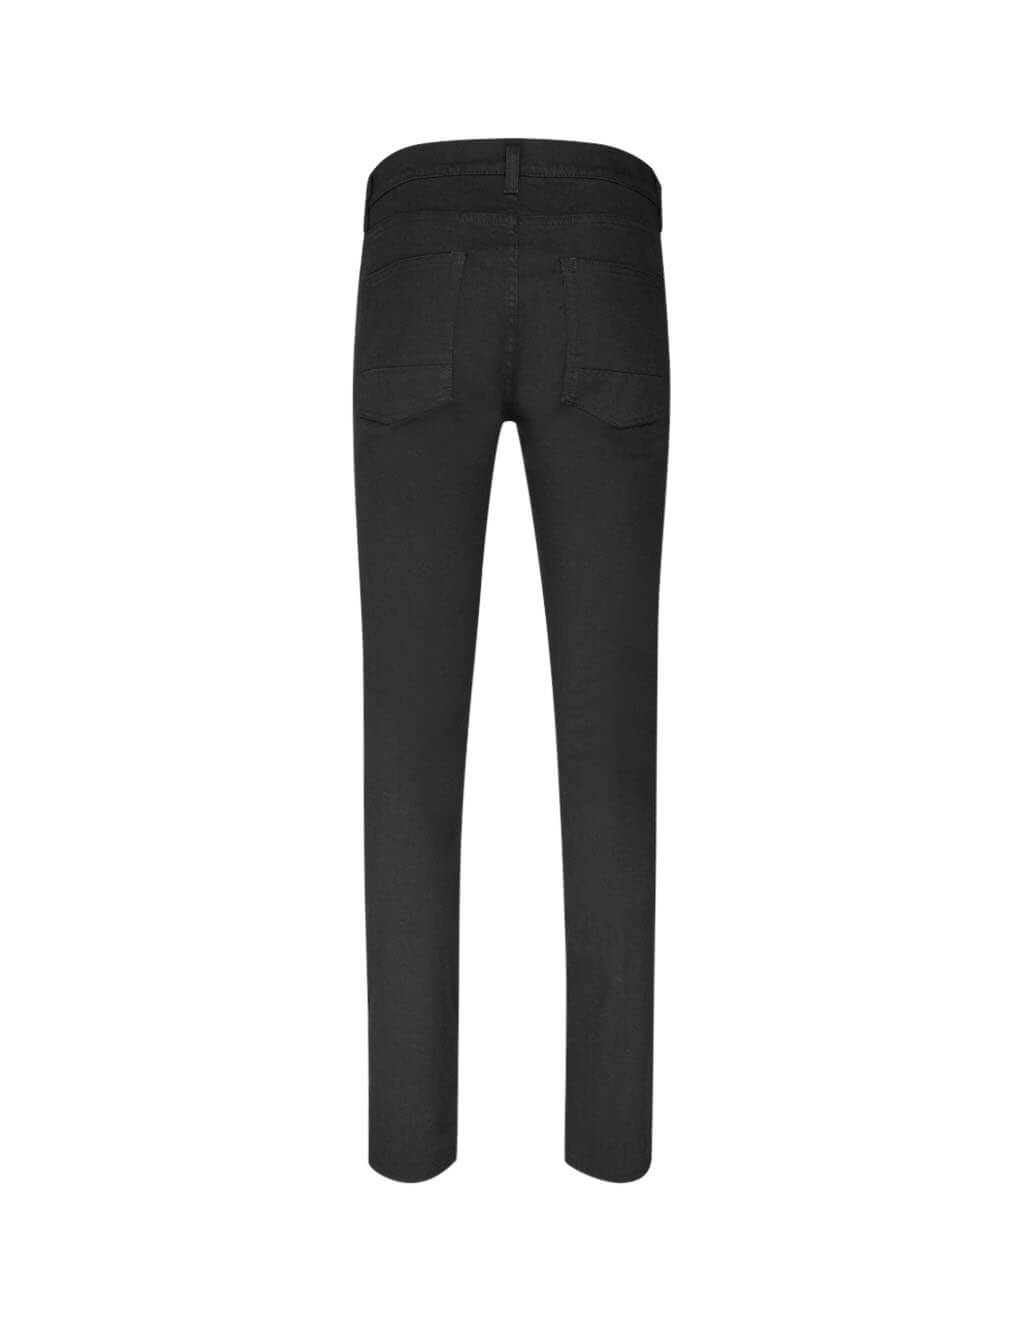 Alexander McQueen Men's Giulio Fashion Black Side Stripe Jeans 567866QNY010901